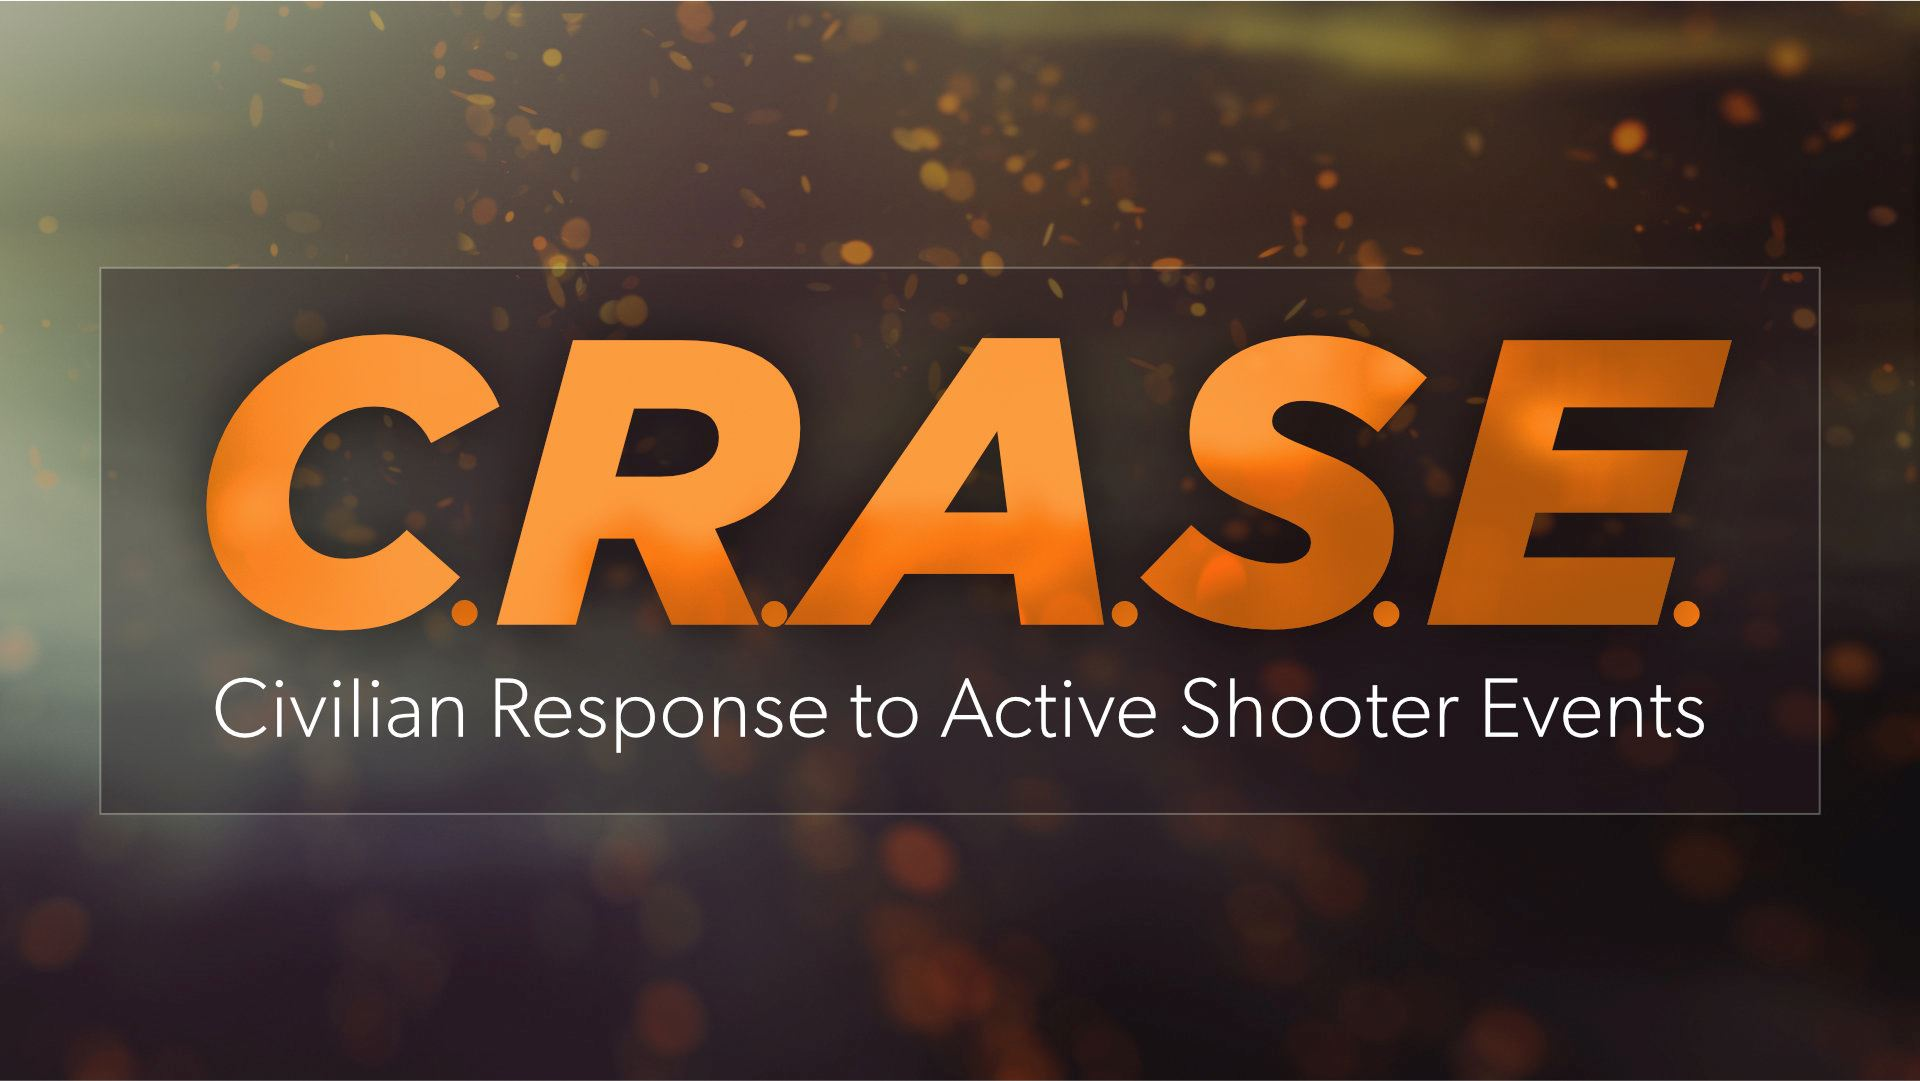 CRASE - Civilian Response to Active Shooter Events